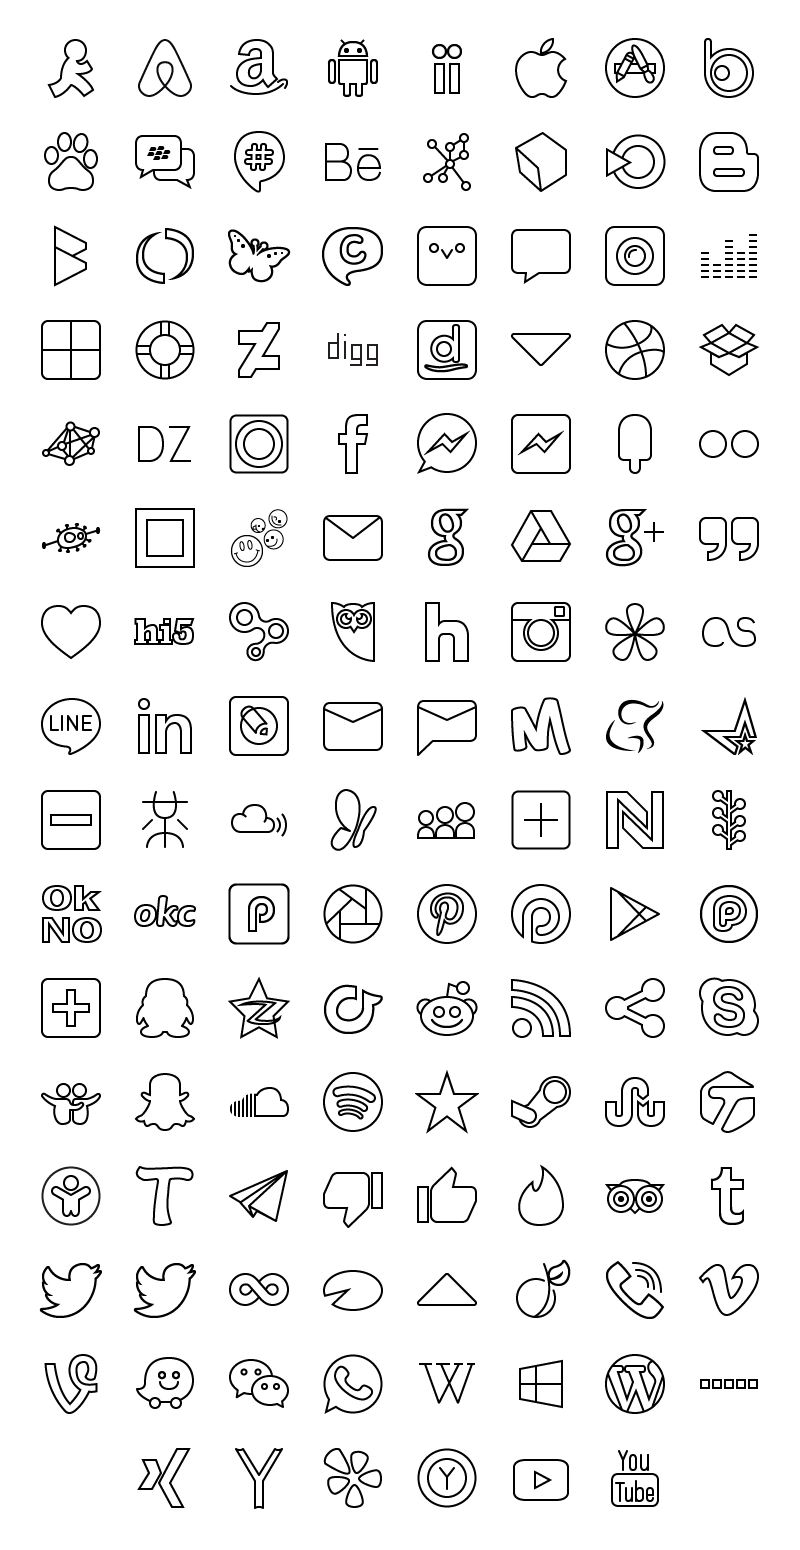 Social Media Icons by Iconshock